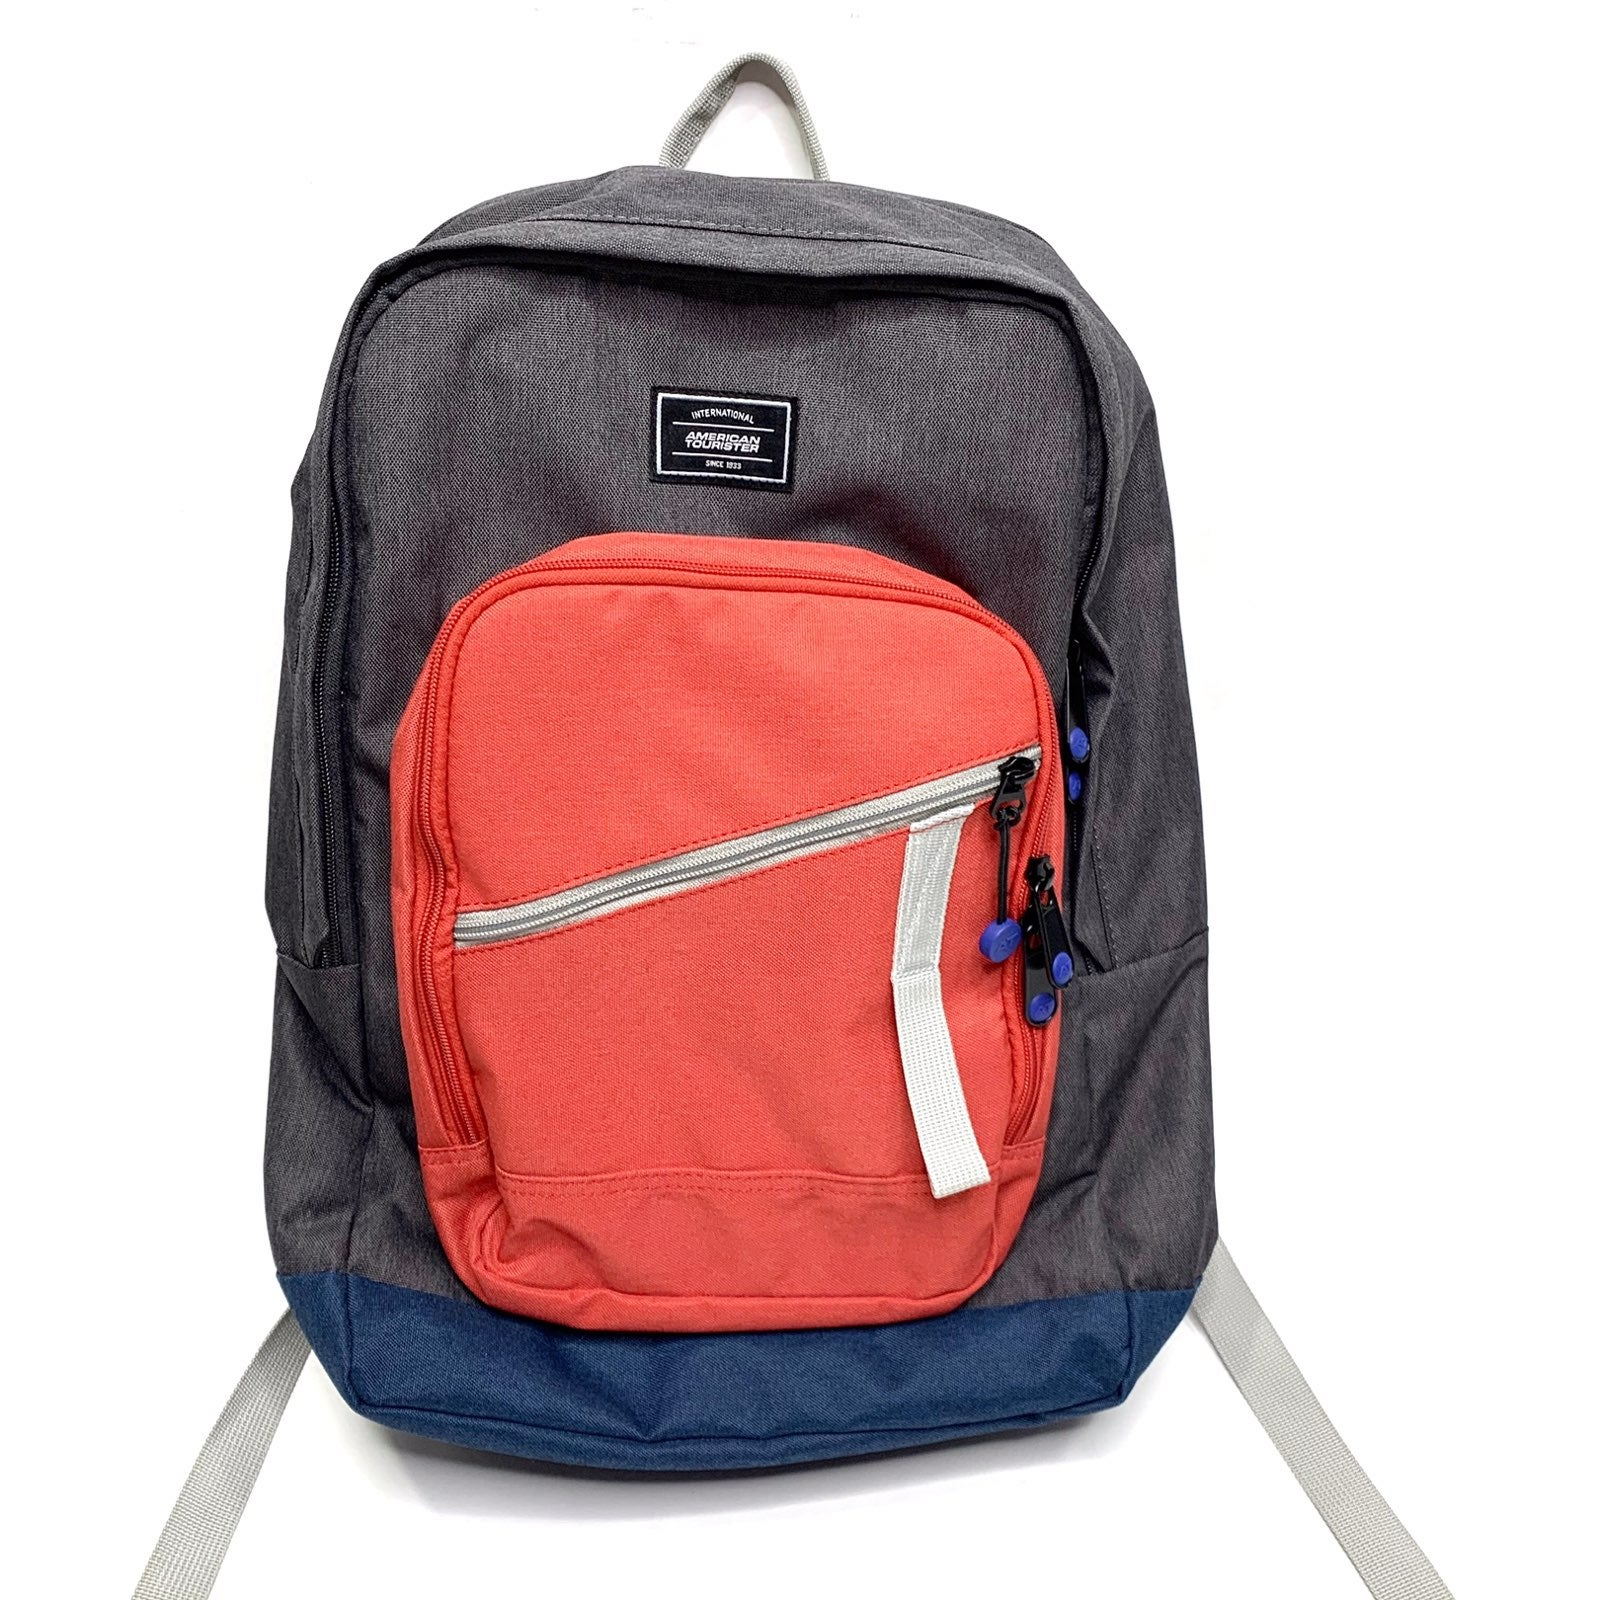 American Tourister Backpack Red Gray